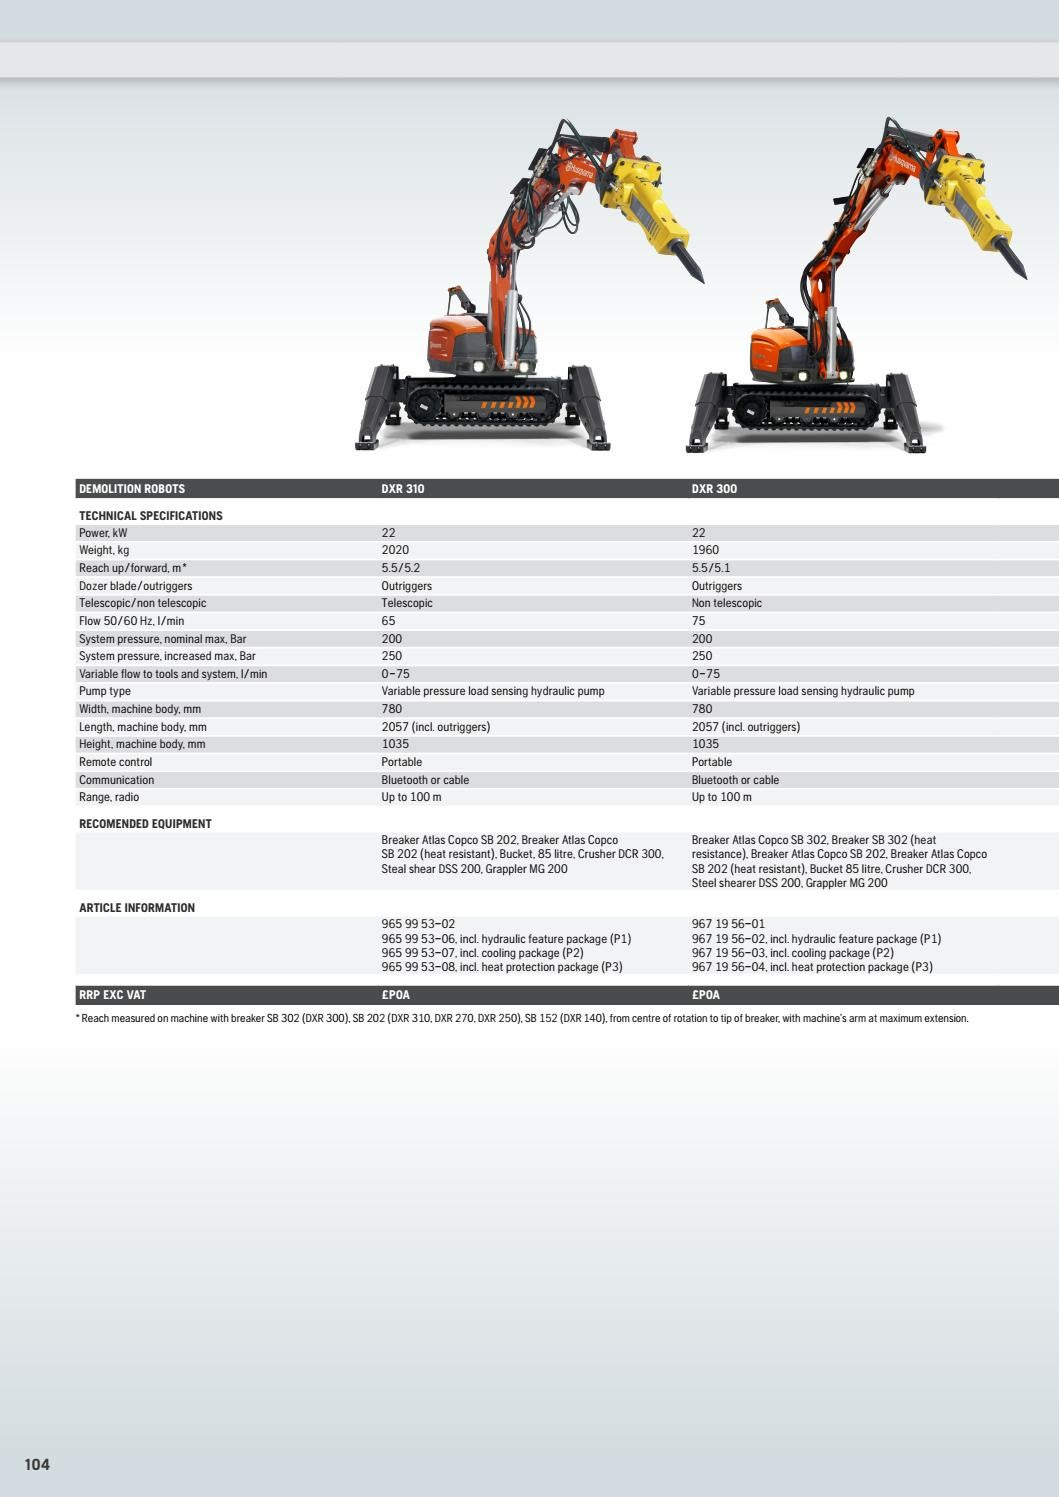 HCP UK Price List 2016 by Husqvarna Construction Products